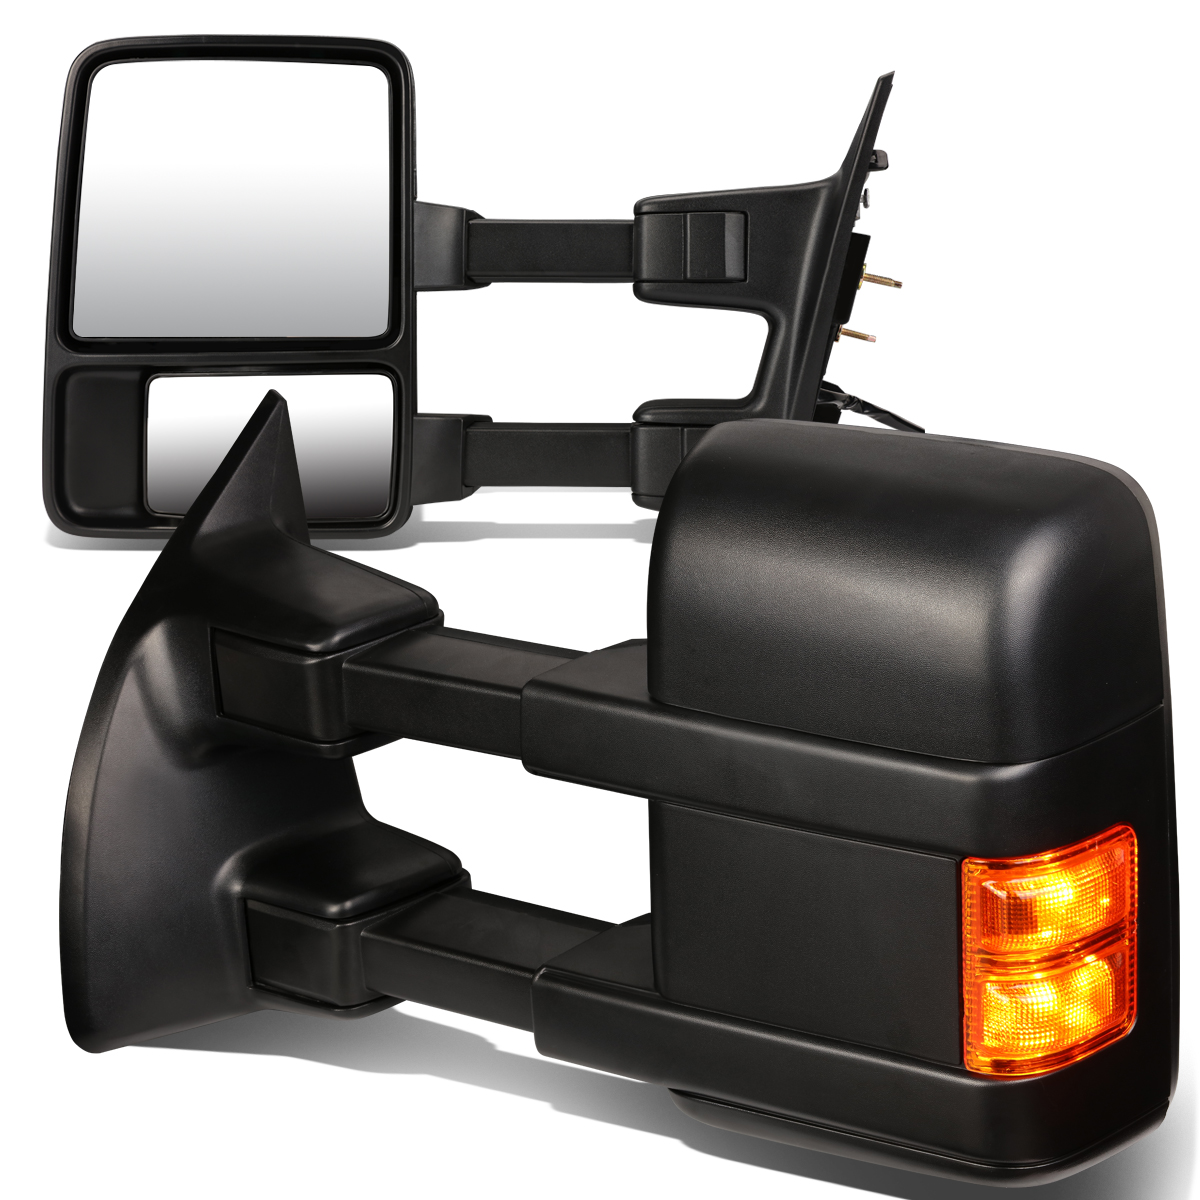 For 08-16 Super Duty Pair of Black Textured Telescoping Extendable + Amber Signal Side Towing Mirror 10 11 12 13 14 15